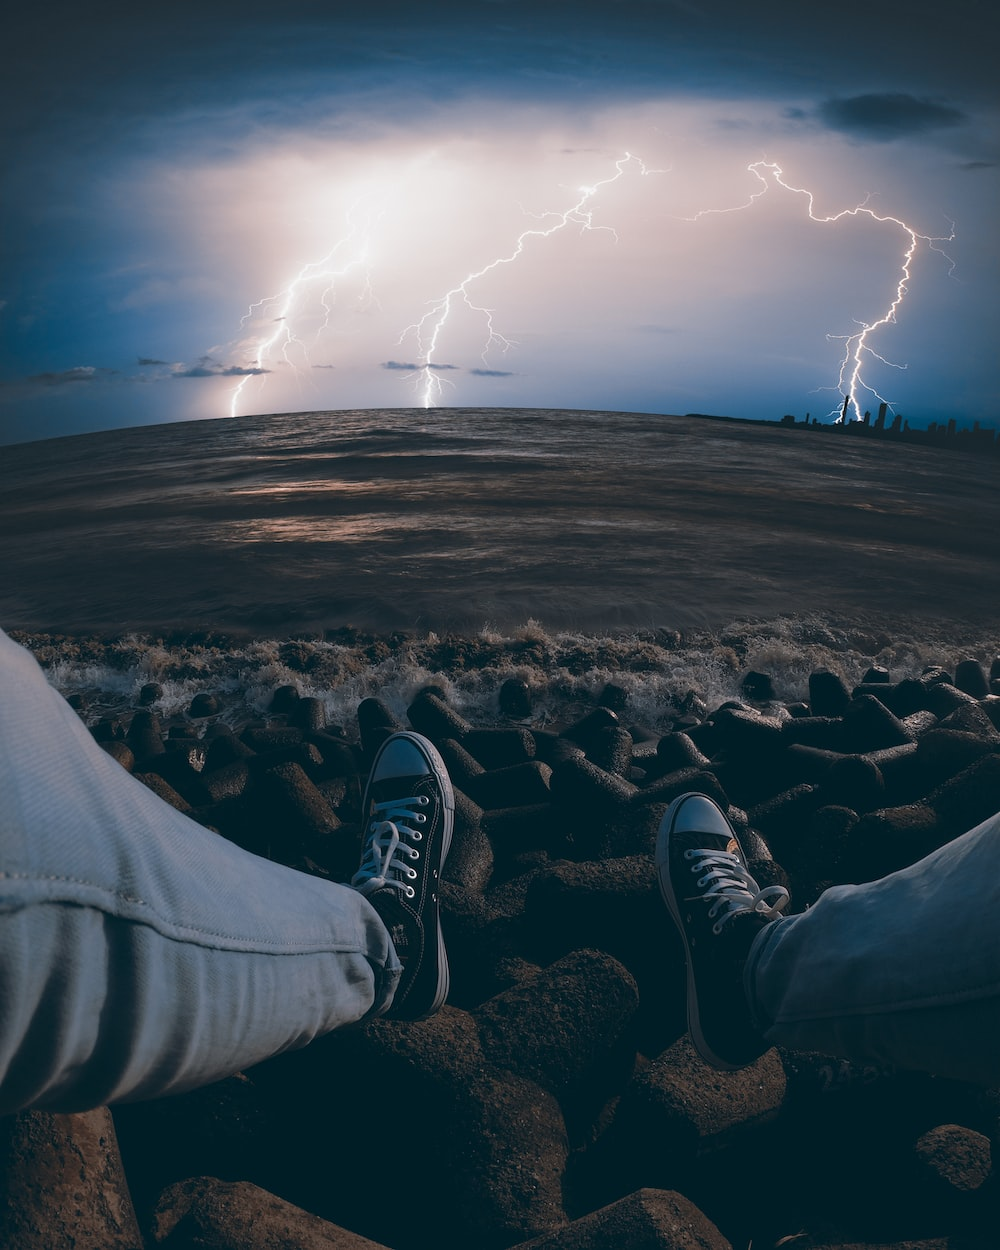 lightning at the sea during stormy day